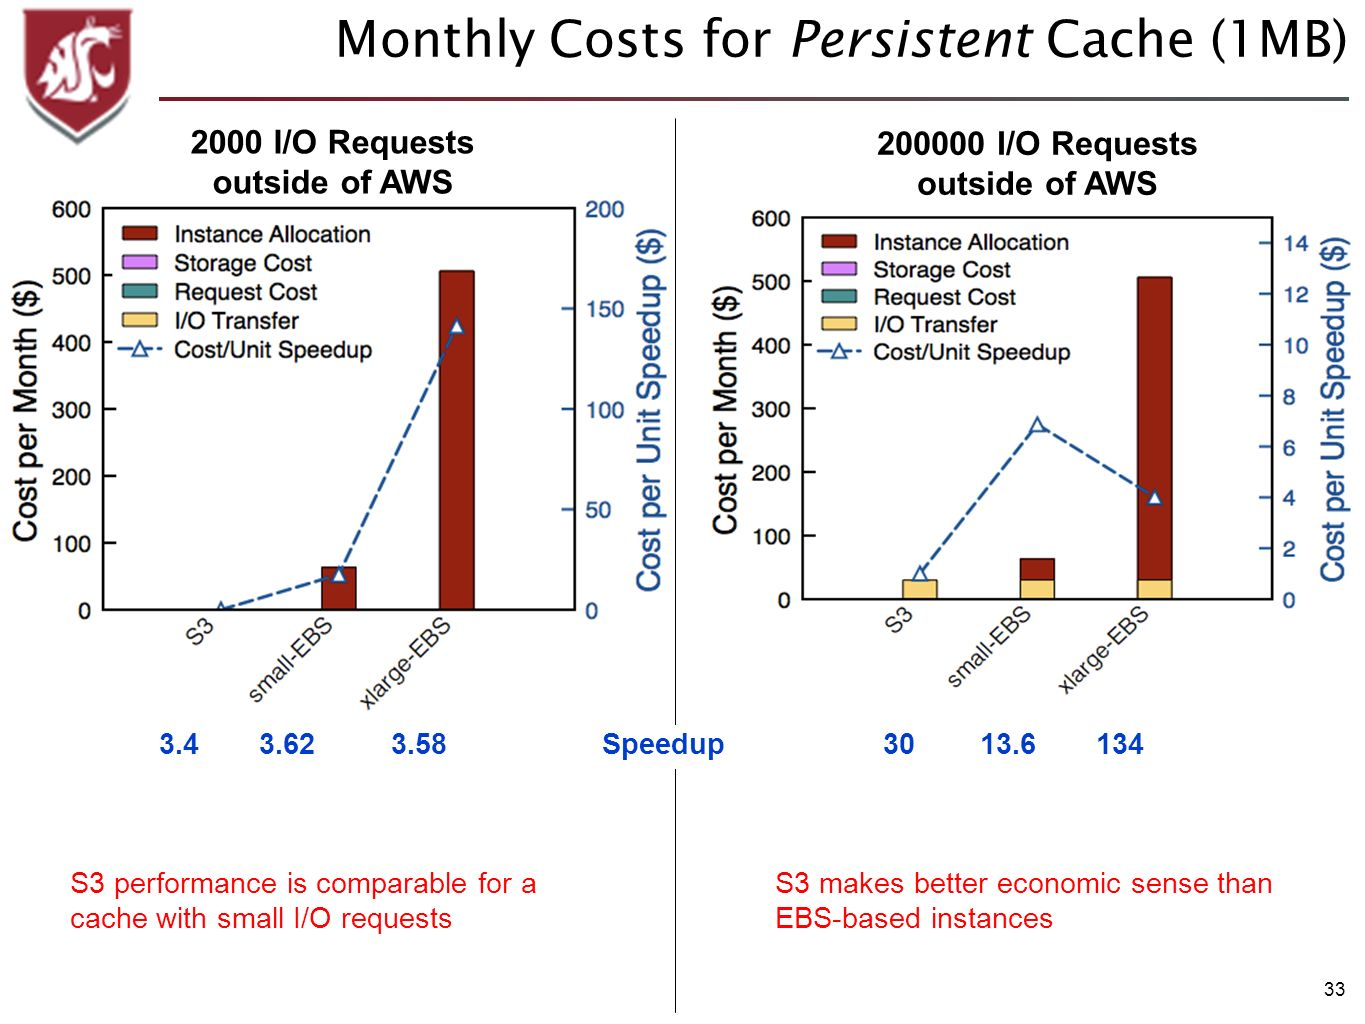 33 Monthly Costs for Persistent Cache (1MB) I/O Requests outside of AWS 2000 I/O Requests outside of AWS S3 makes better economic sense than EBS-based instances Speedup S3 performance is comparable for a cache with small I/O requests